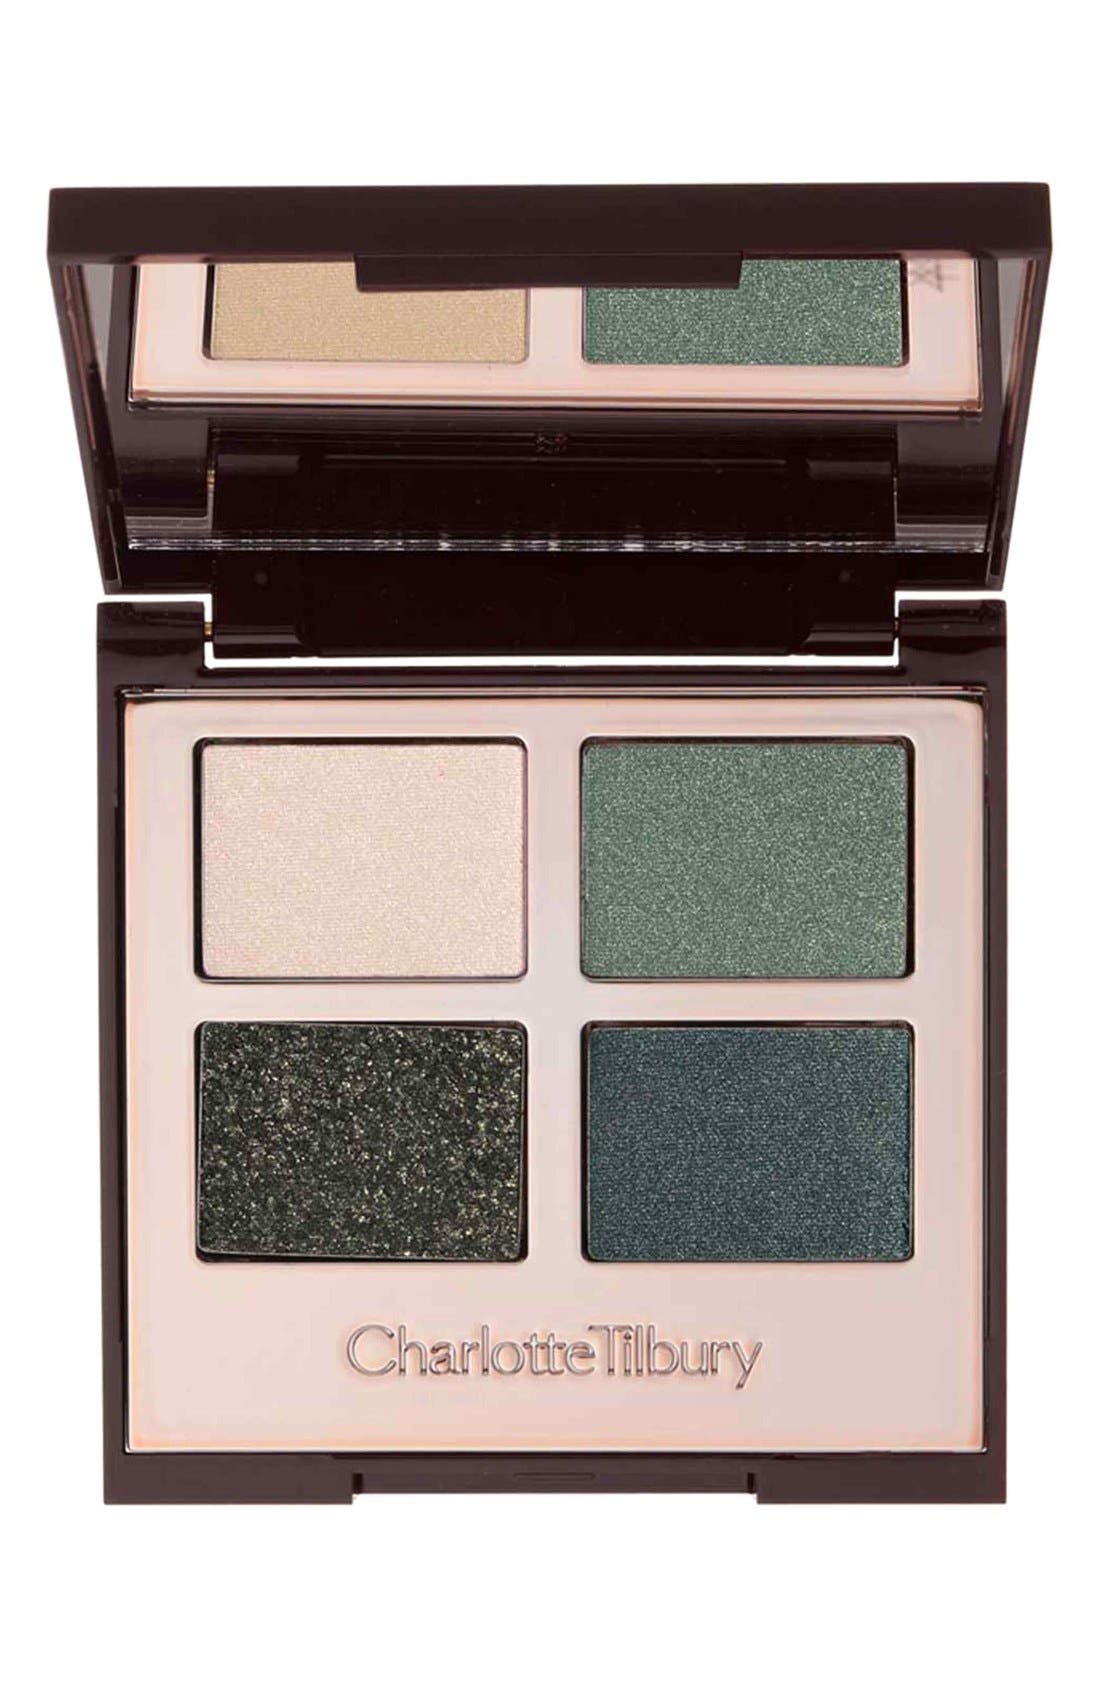 Charlotte Tilbury 'Luxury Palette' Colour-Coded Eyeshadow Palette